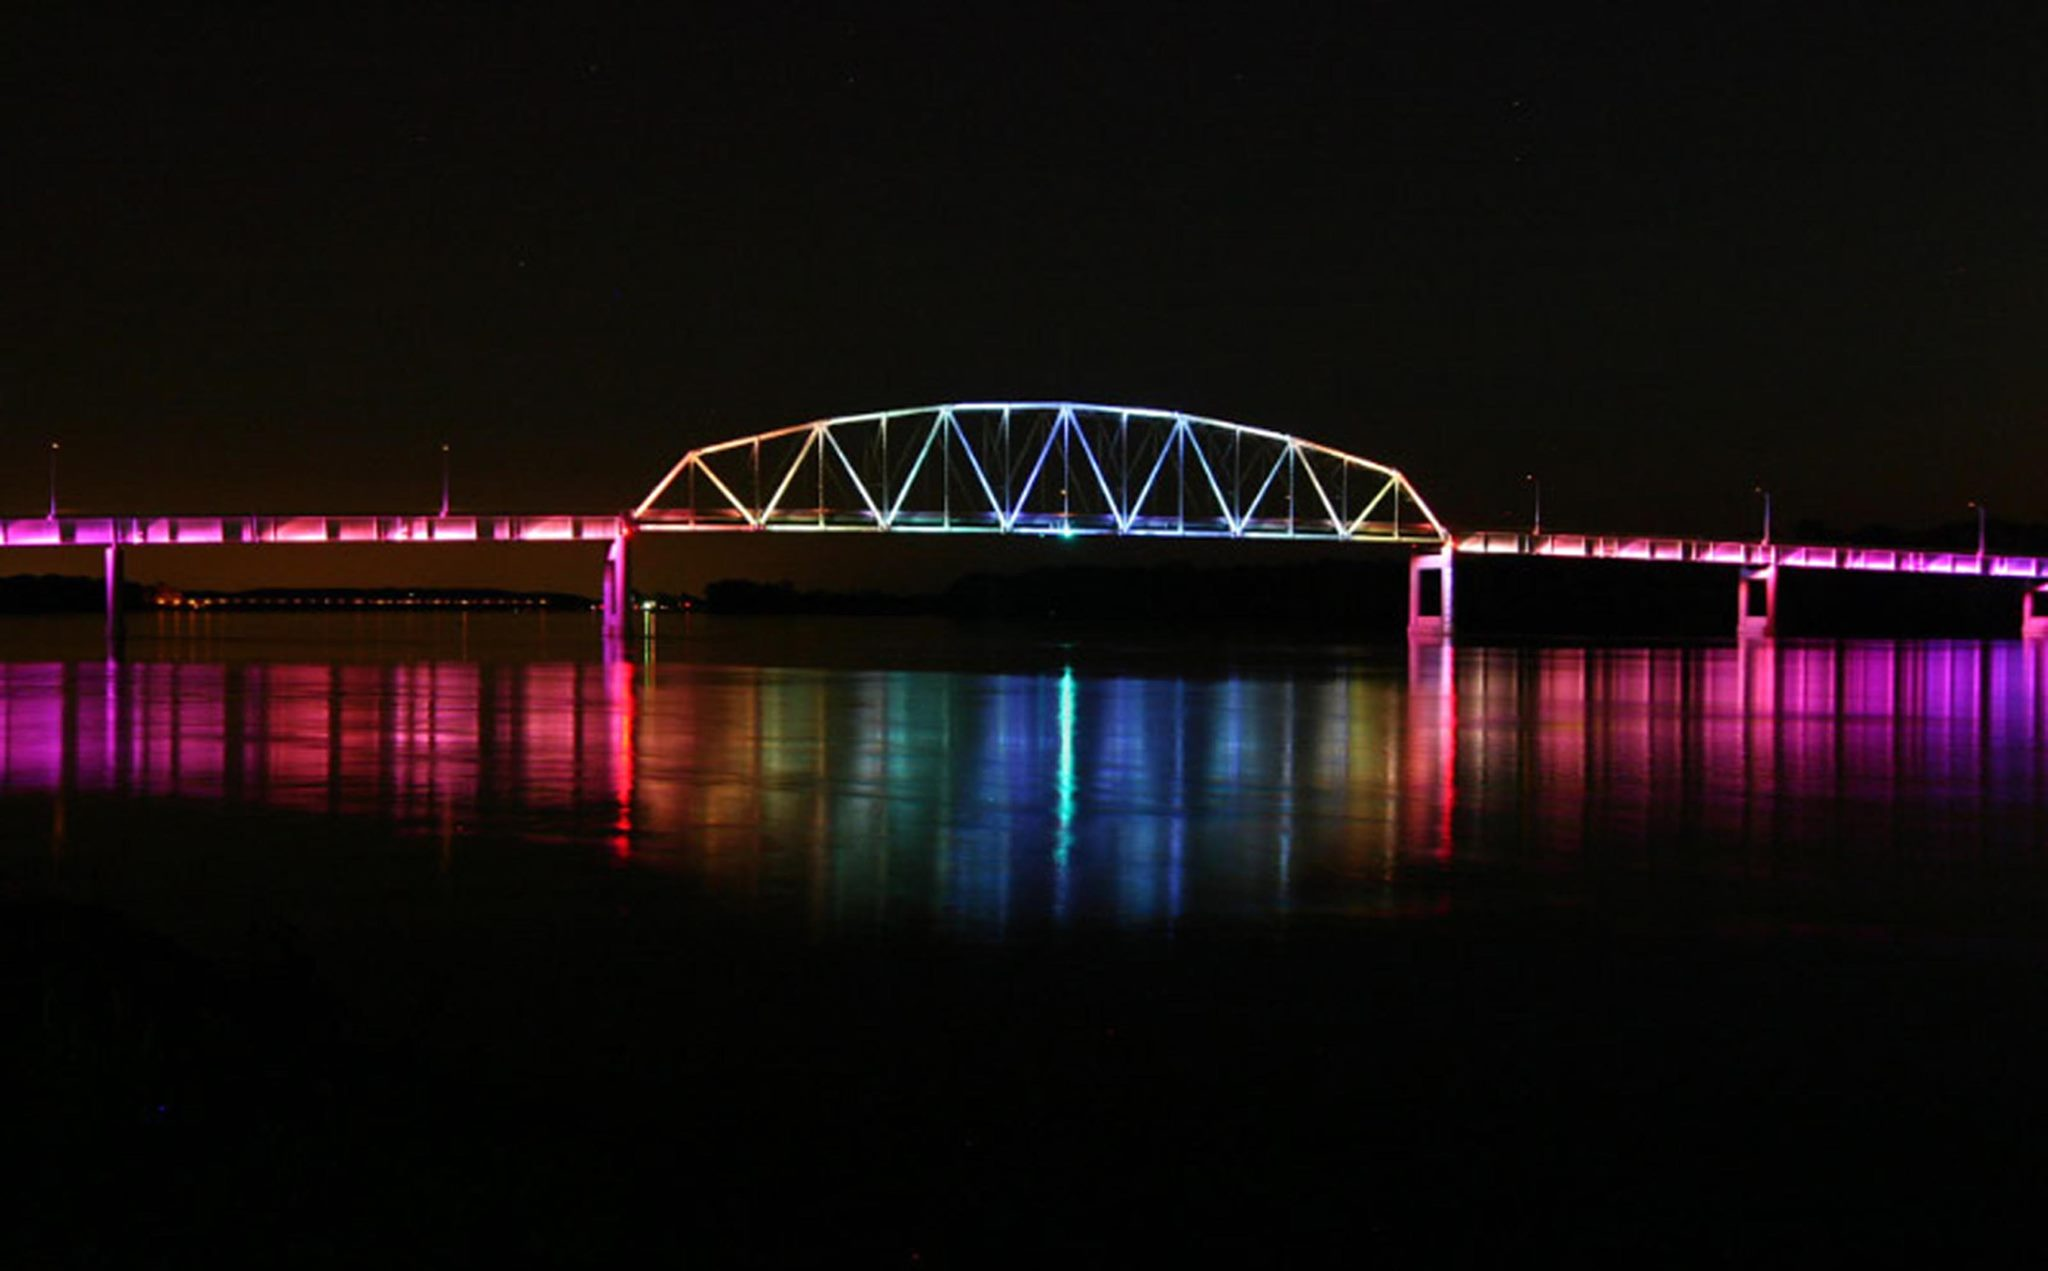 Bridge Lights 001 (JPG)